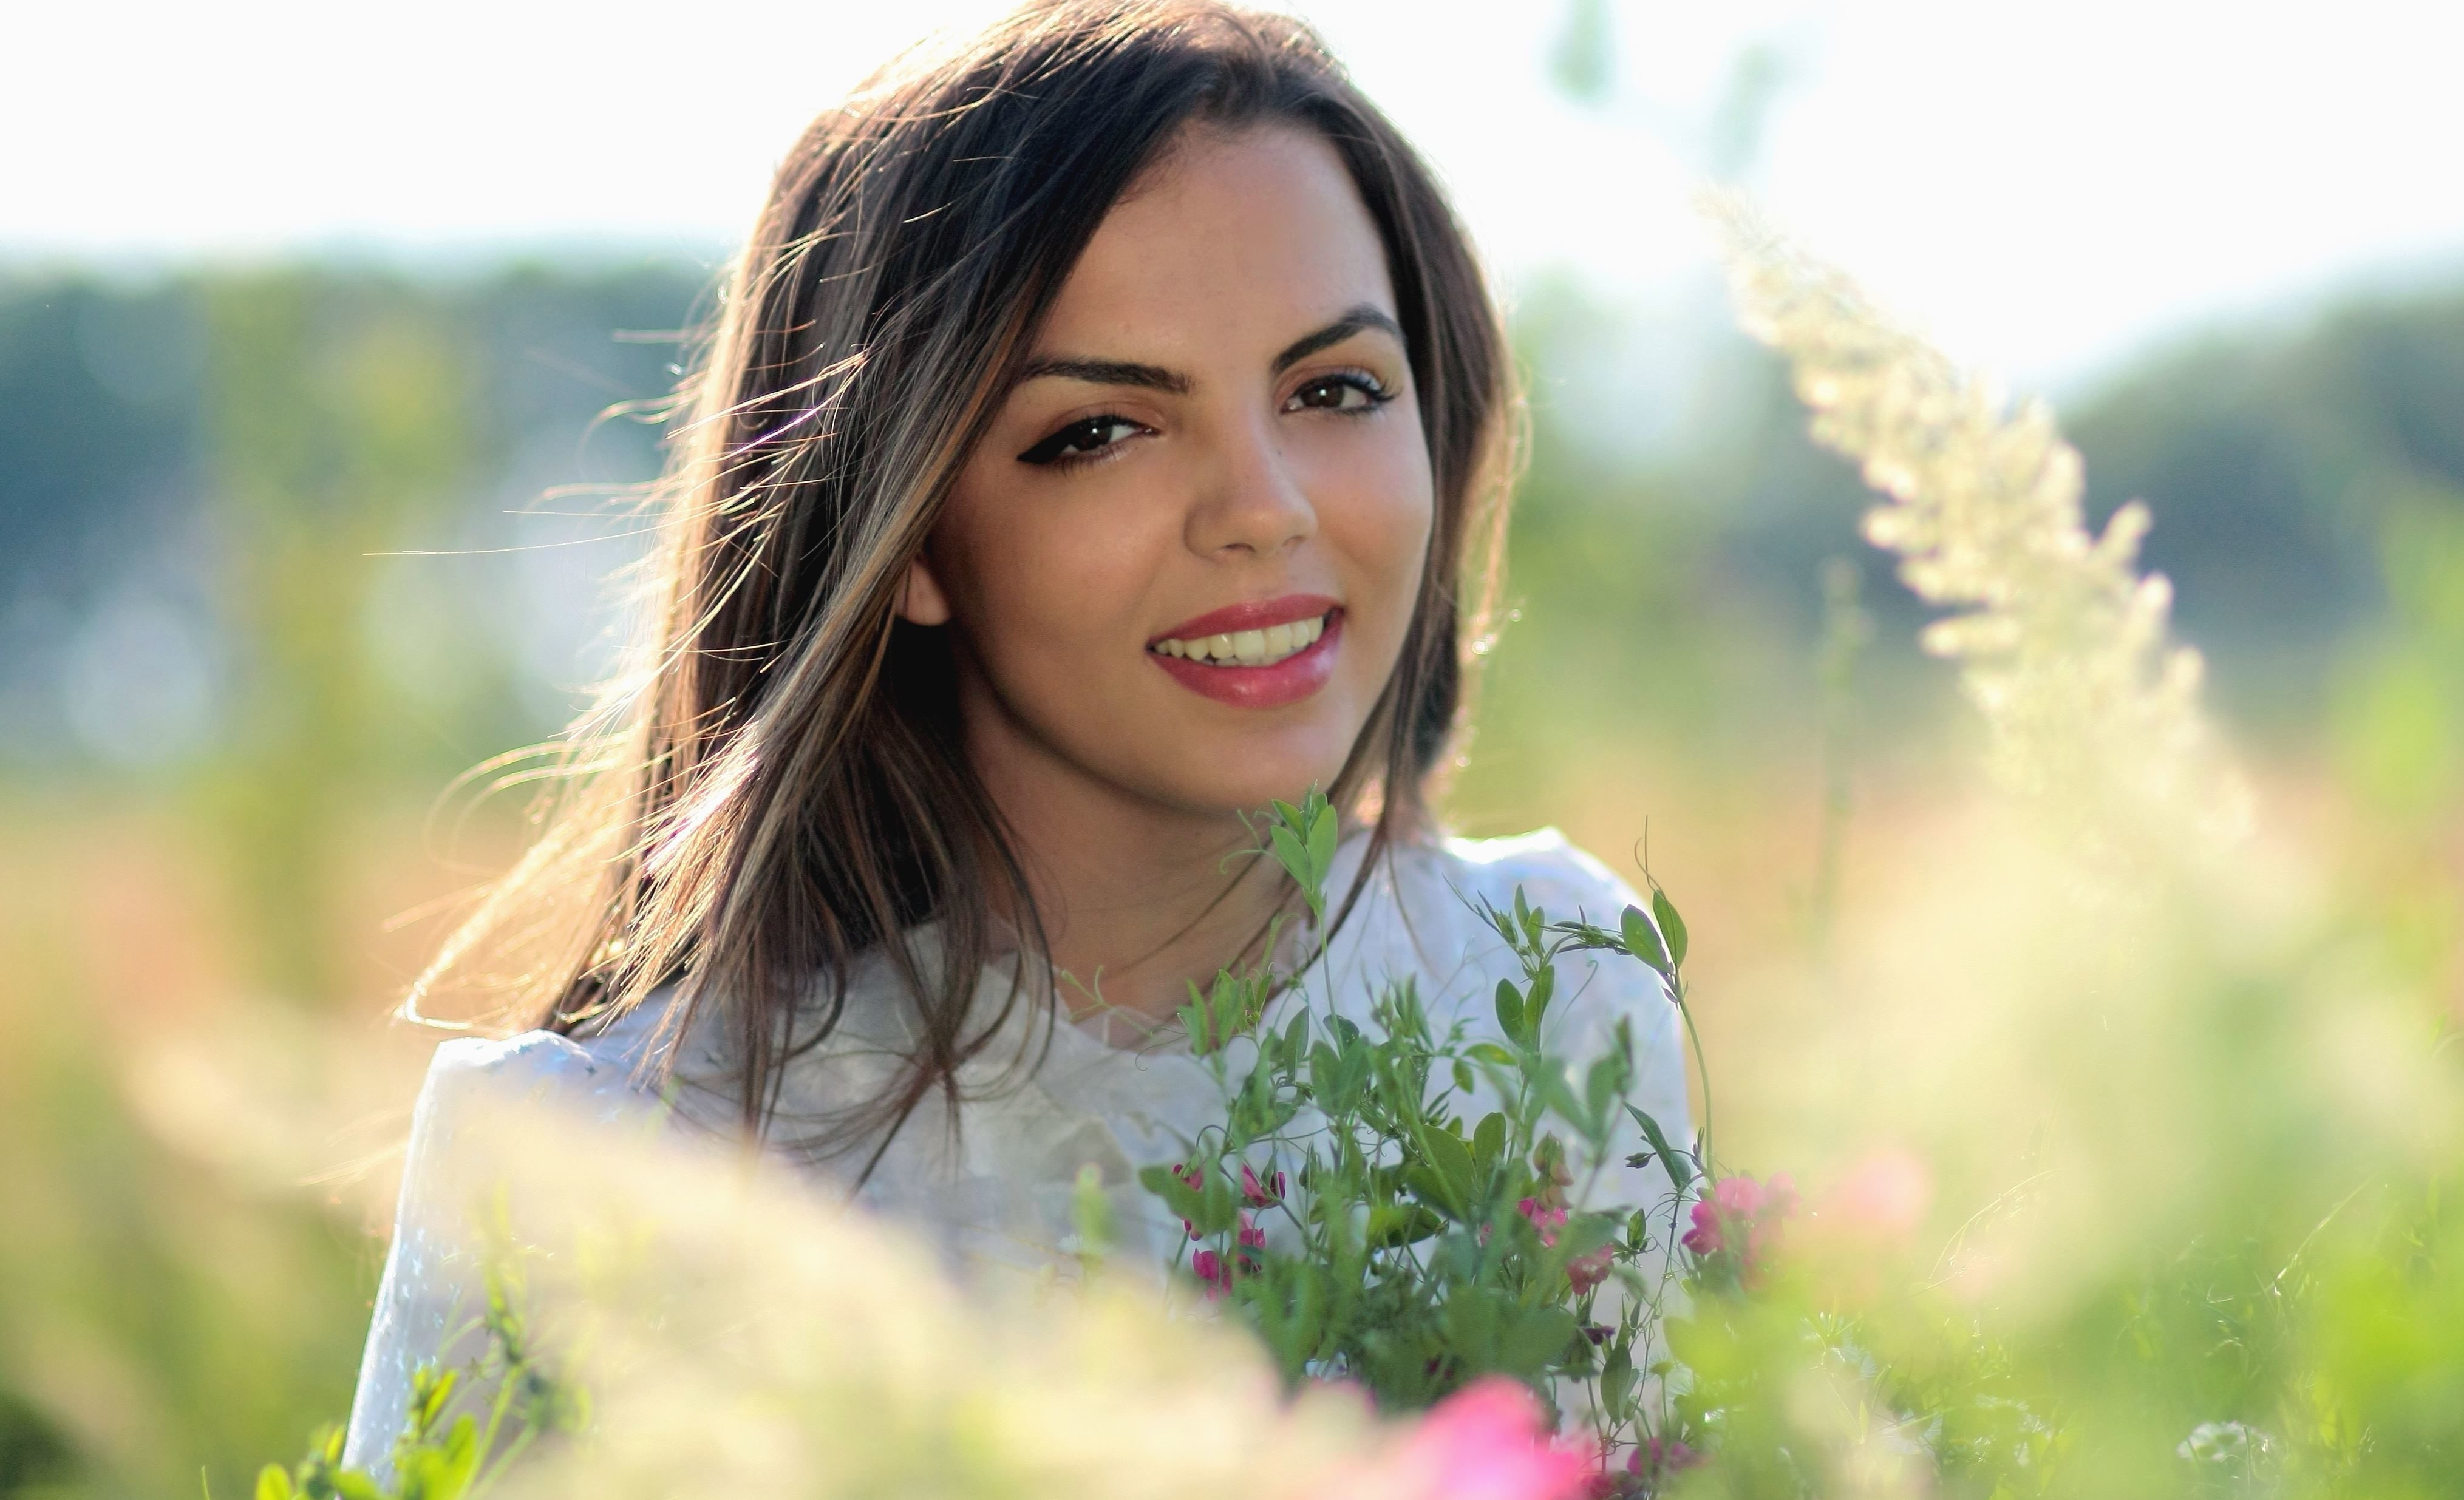 Free Picture Girl Beautiful Smile Makeup Plant